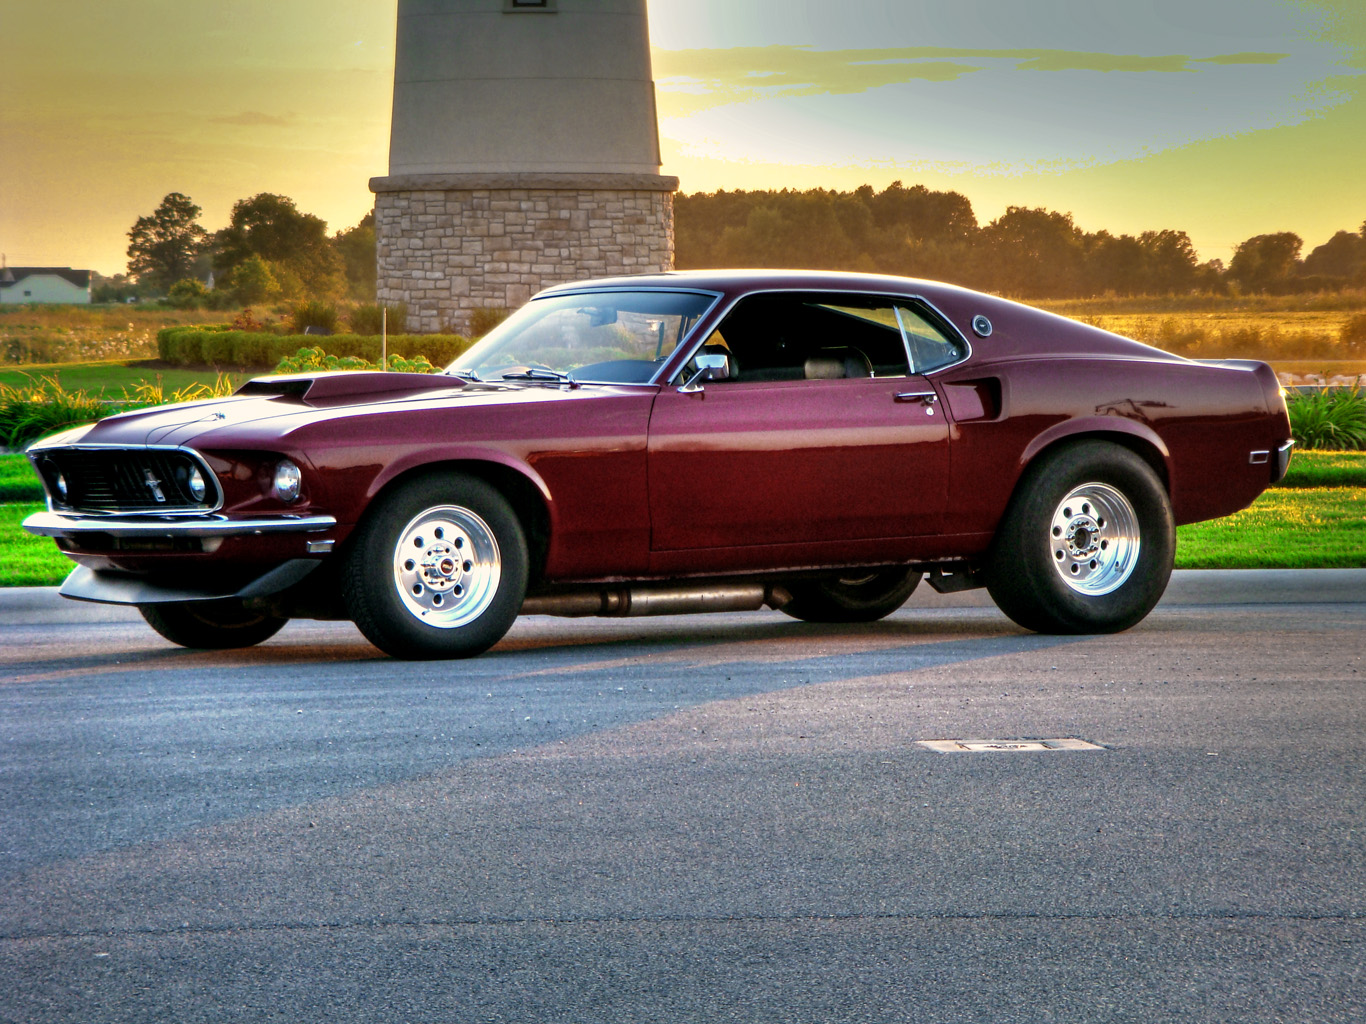 Ford Mustang Fastback Wallpaper And Background Image